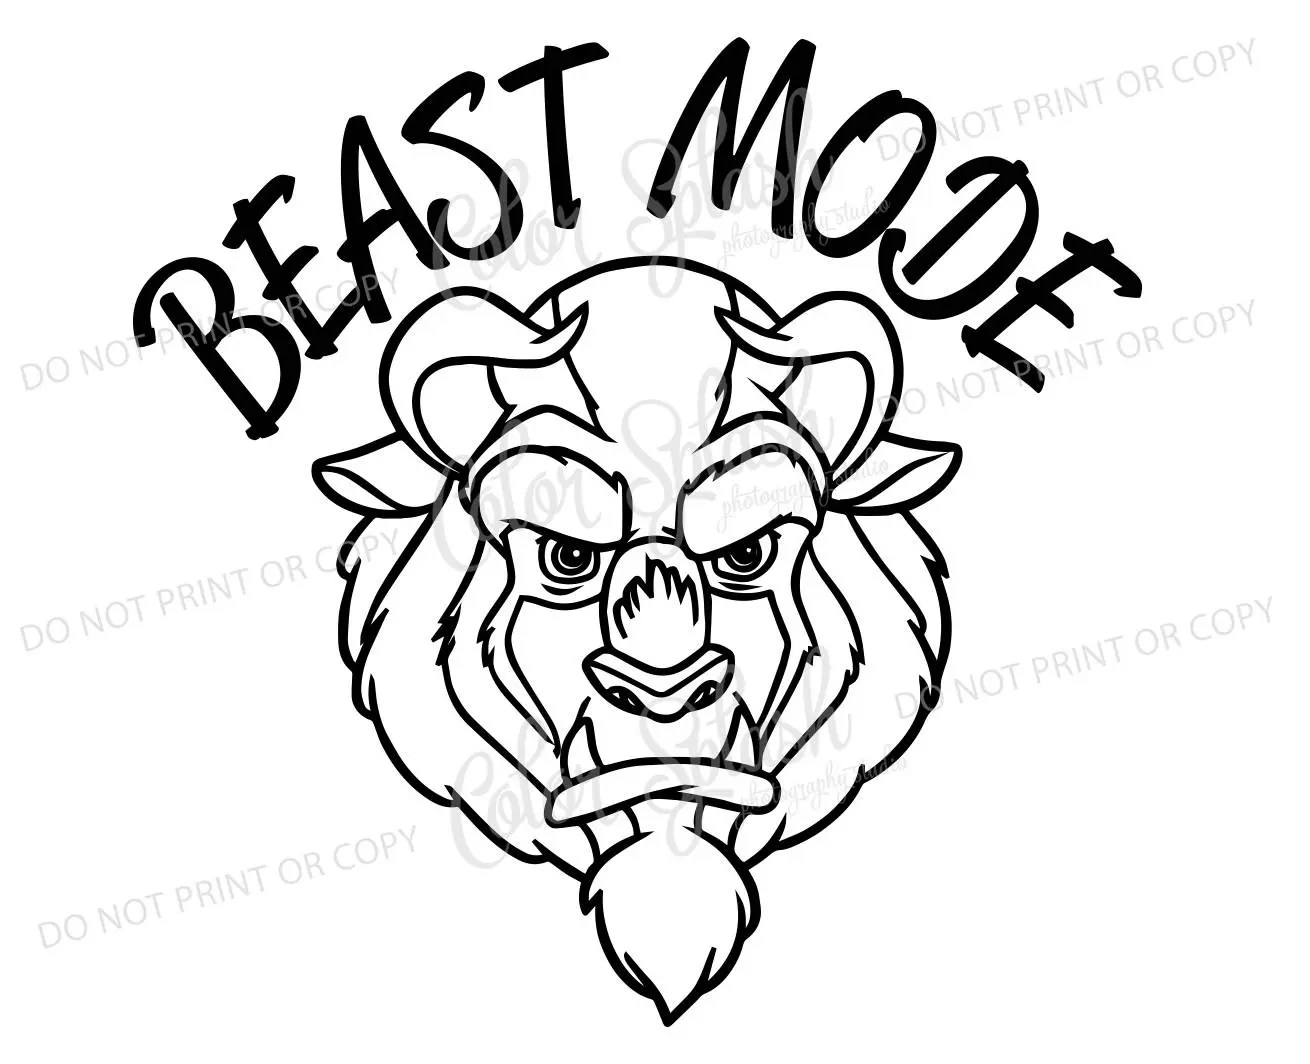 Beauty And The Beast Svg Eps Dxf Cut File Cricut